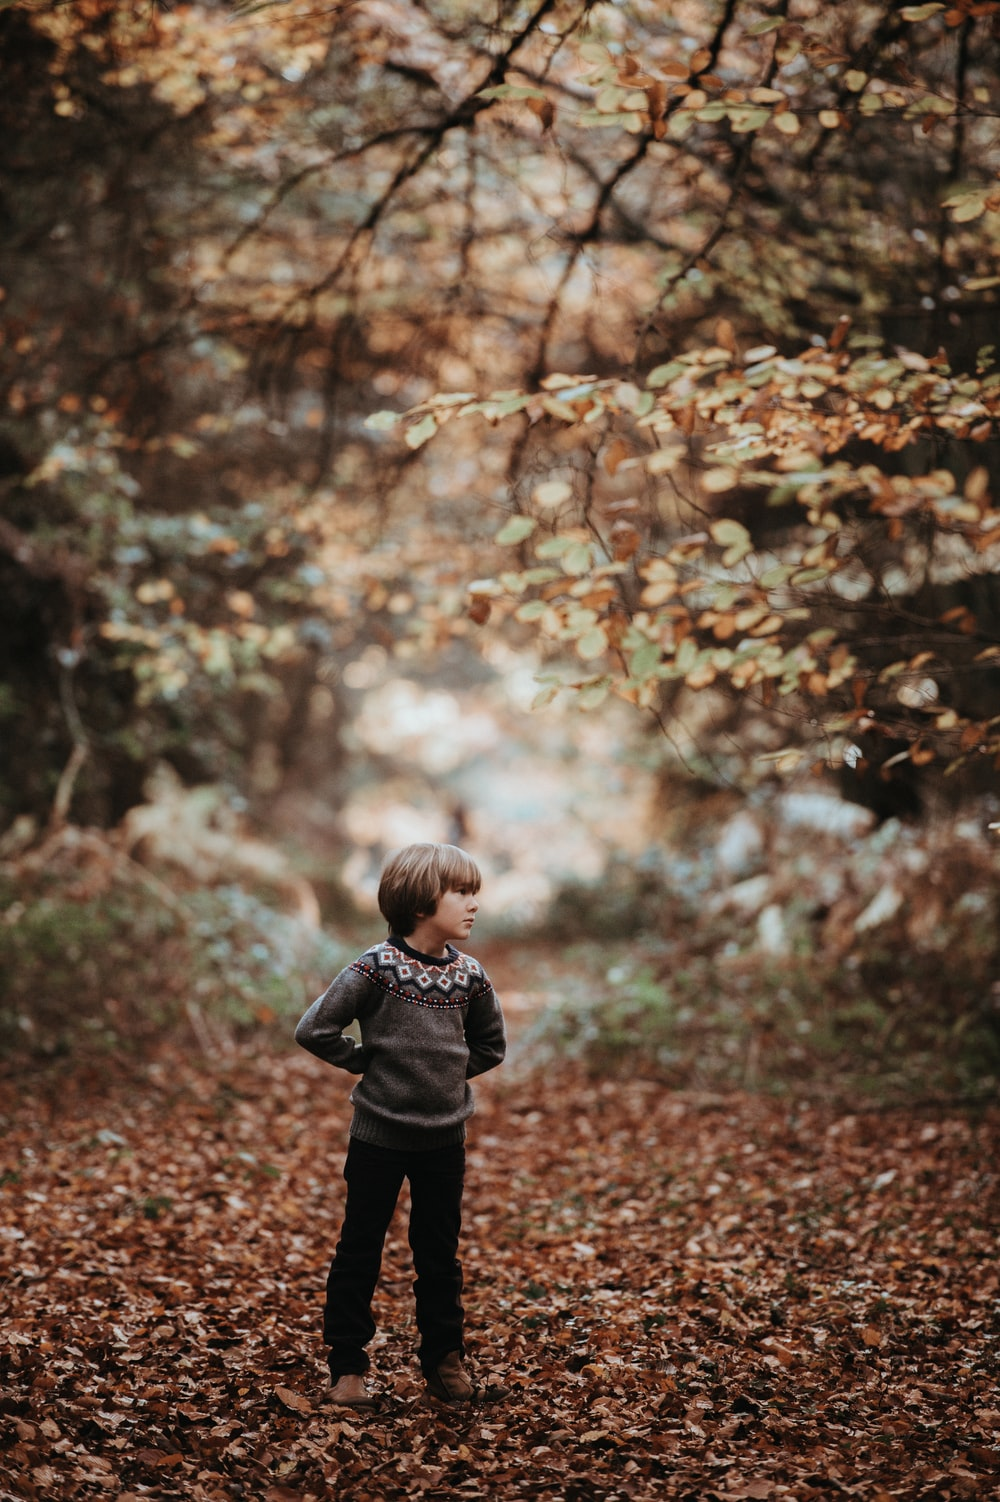 boy standing on dried leaves in forest